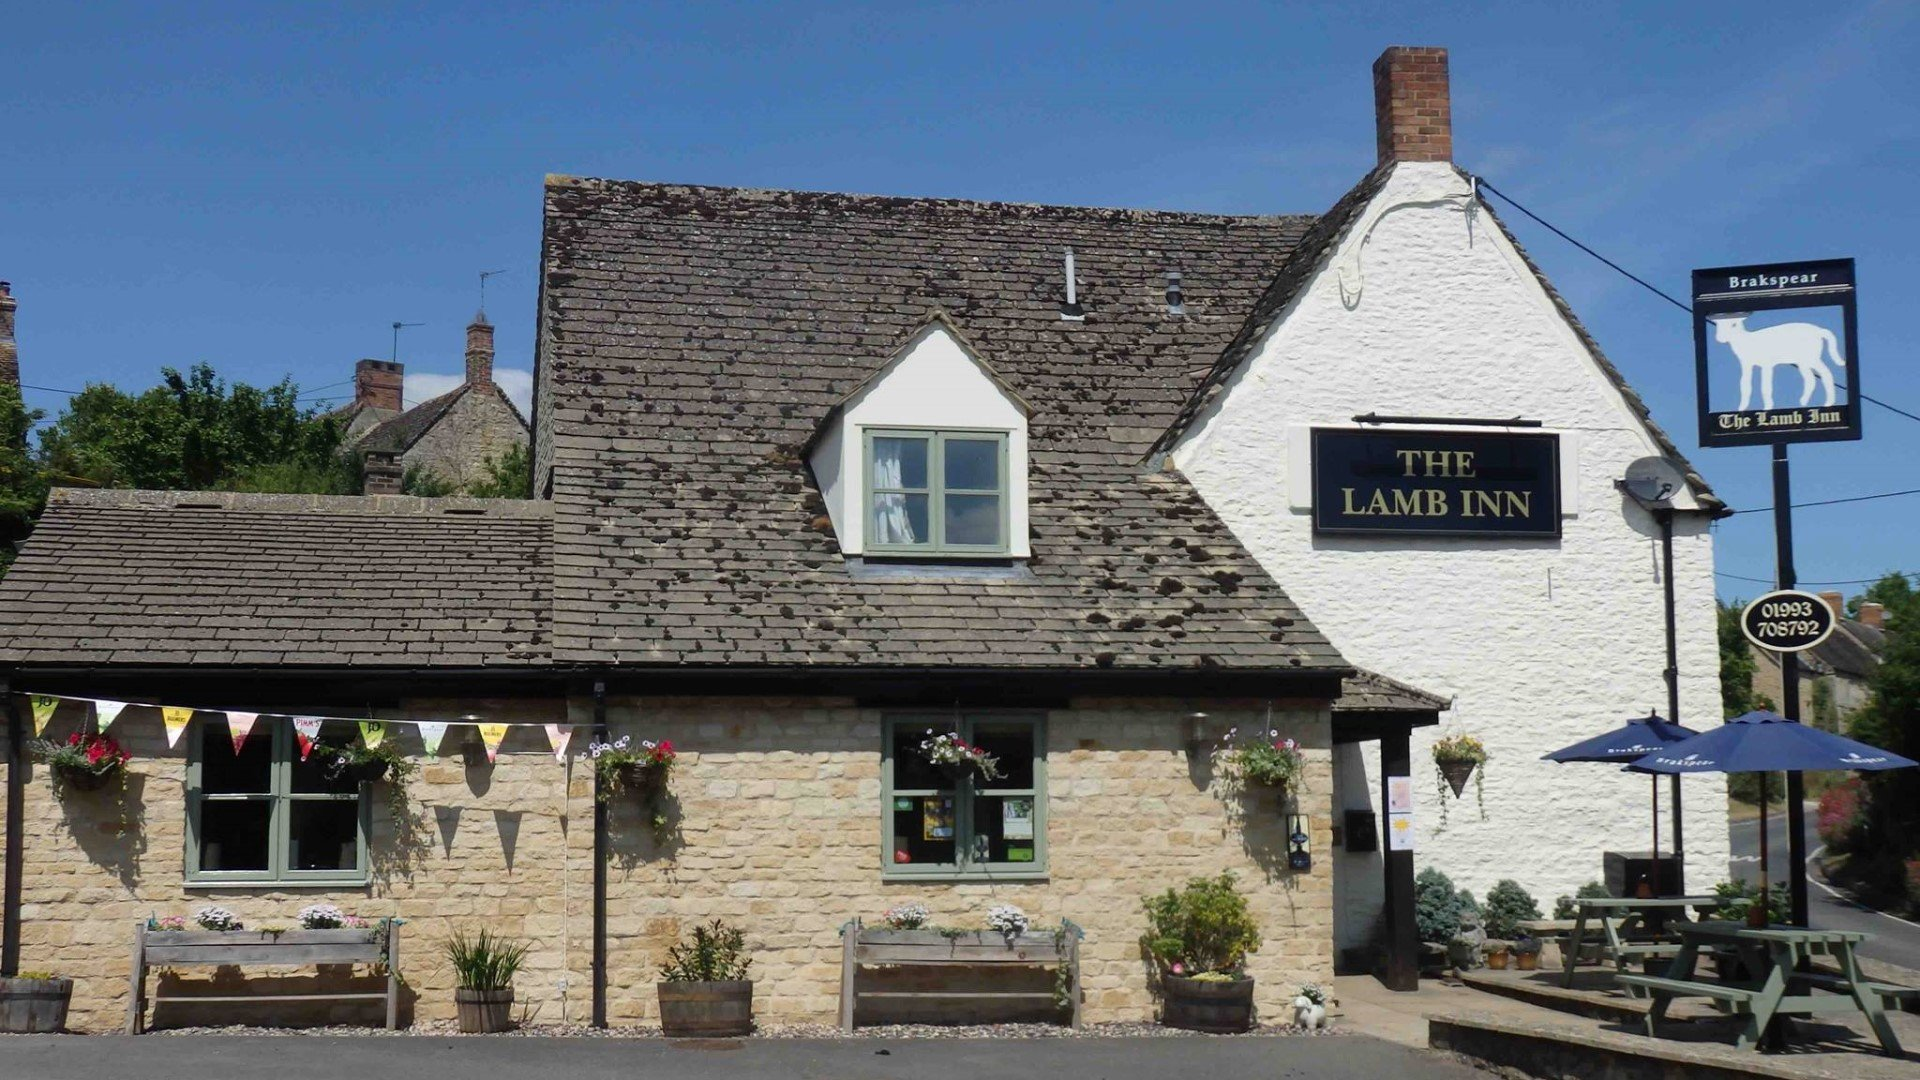 The Lamb Inn, Crawley